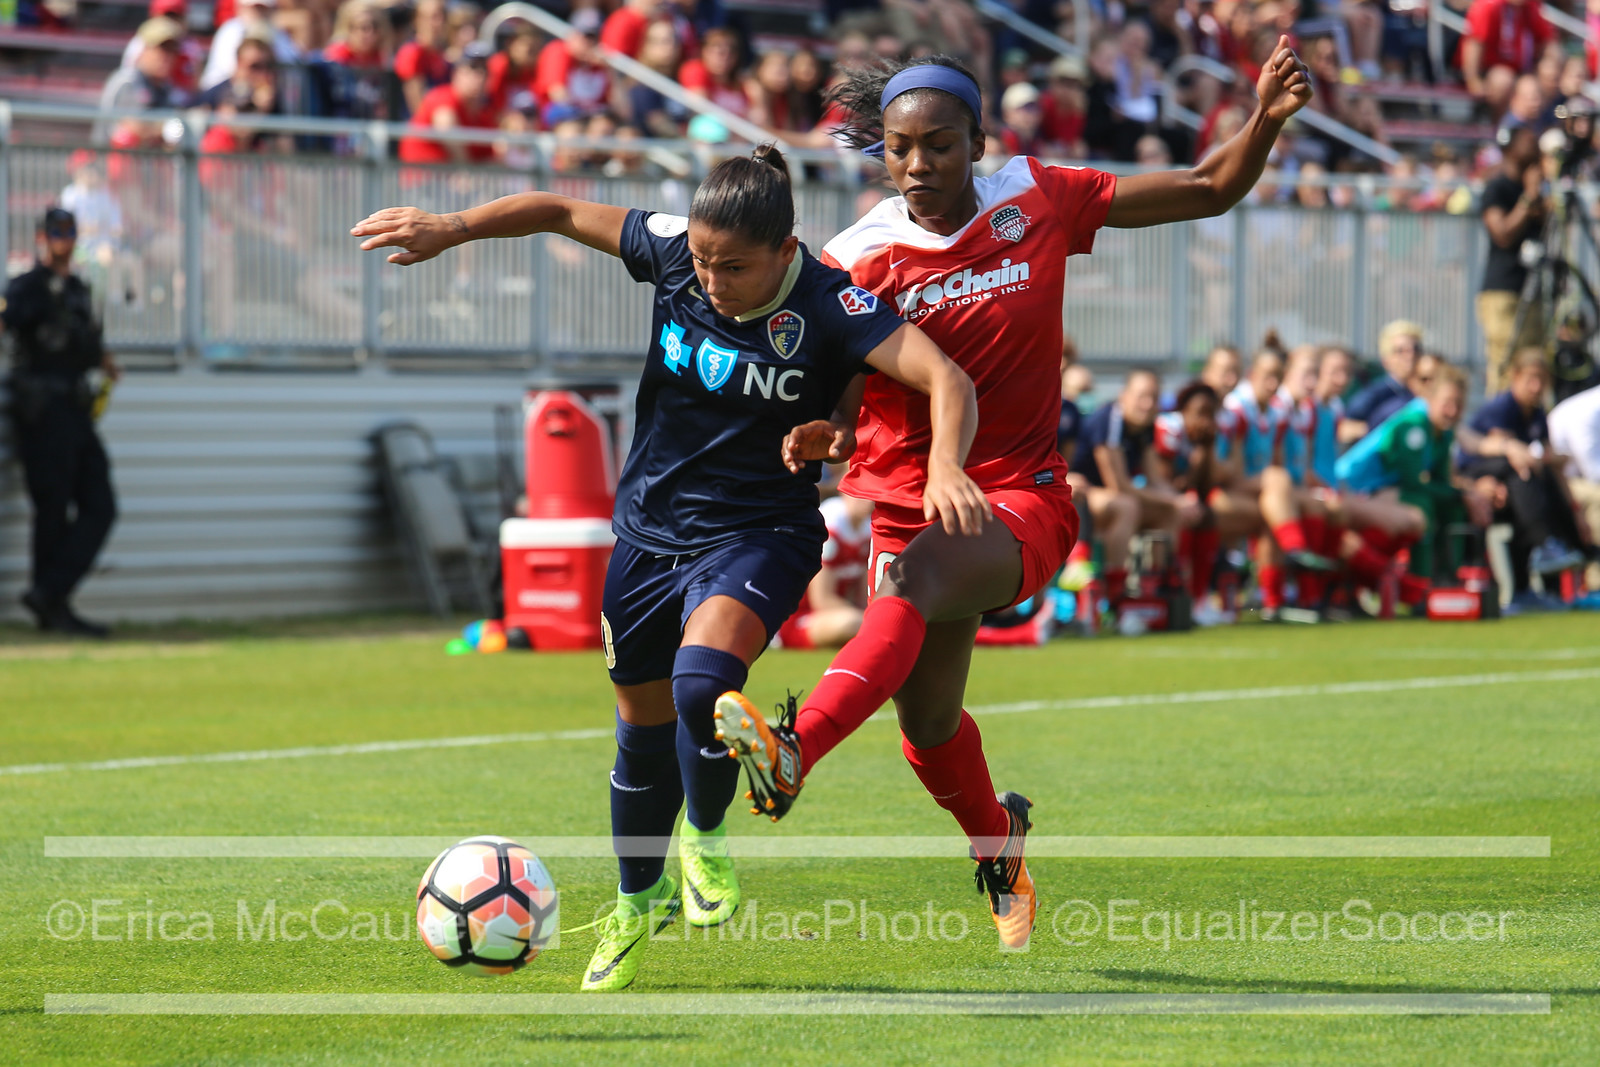 Debinha and Cheyna Williams compete in the Courage's 1-0 win over the Spirit. (photo copyright EriMac Photo for The Equalizer)